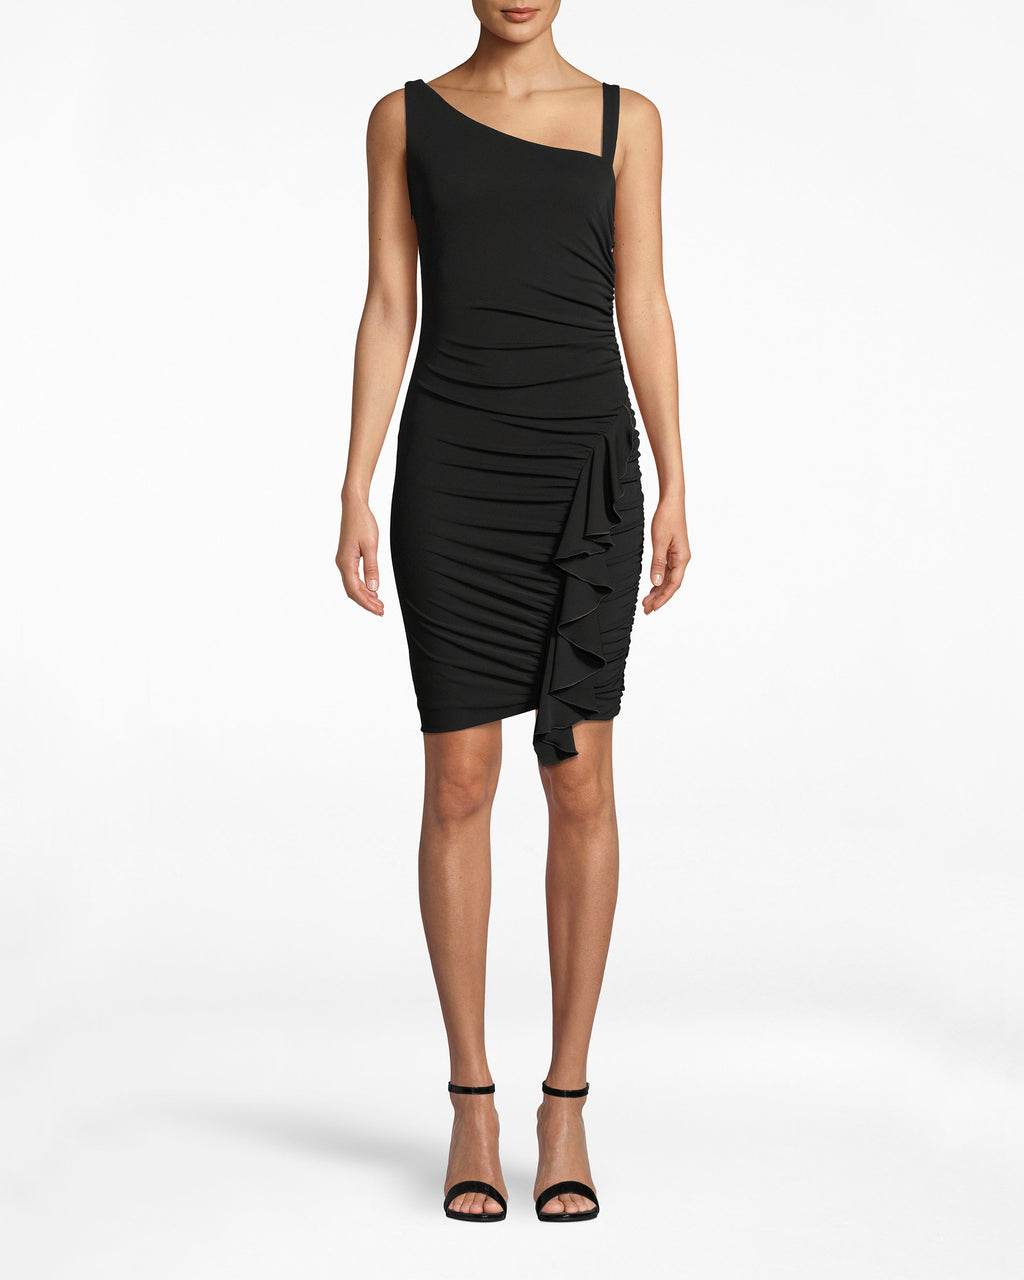 BK10299 - STRETCHY MATTE JERSEY RUCHED RUFFLE DRESS - dresses - midi - Look closer, this 3/4 sleeveless dress is more detailed than it appears. The draping bodice loosely lays onto your frame before the accordion skirt cinches from the waist down.